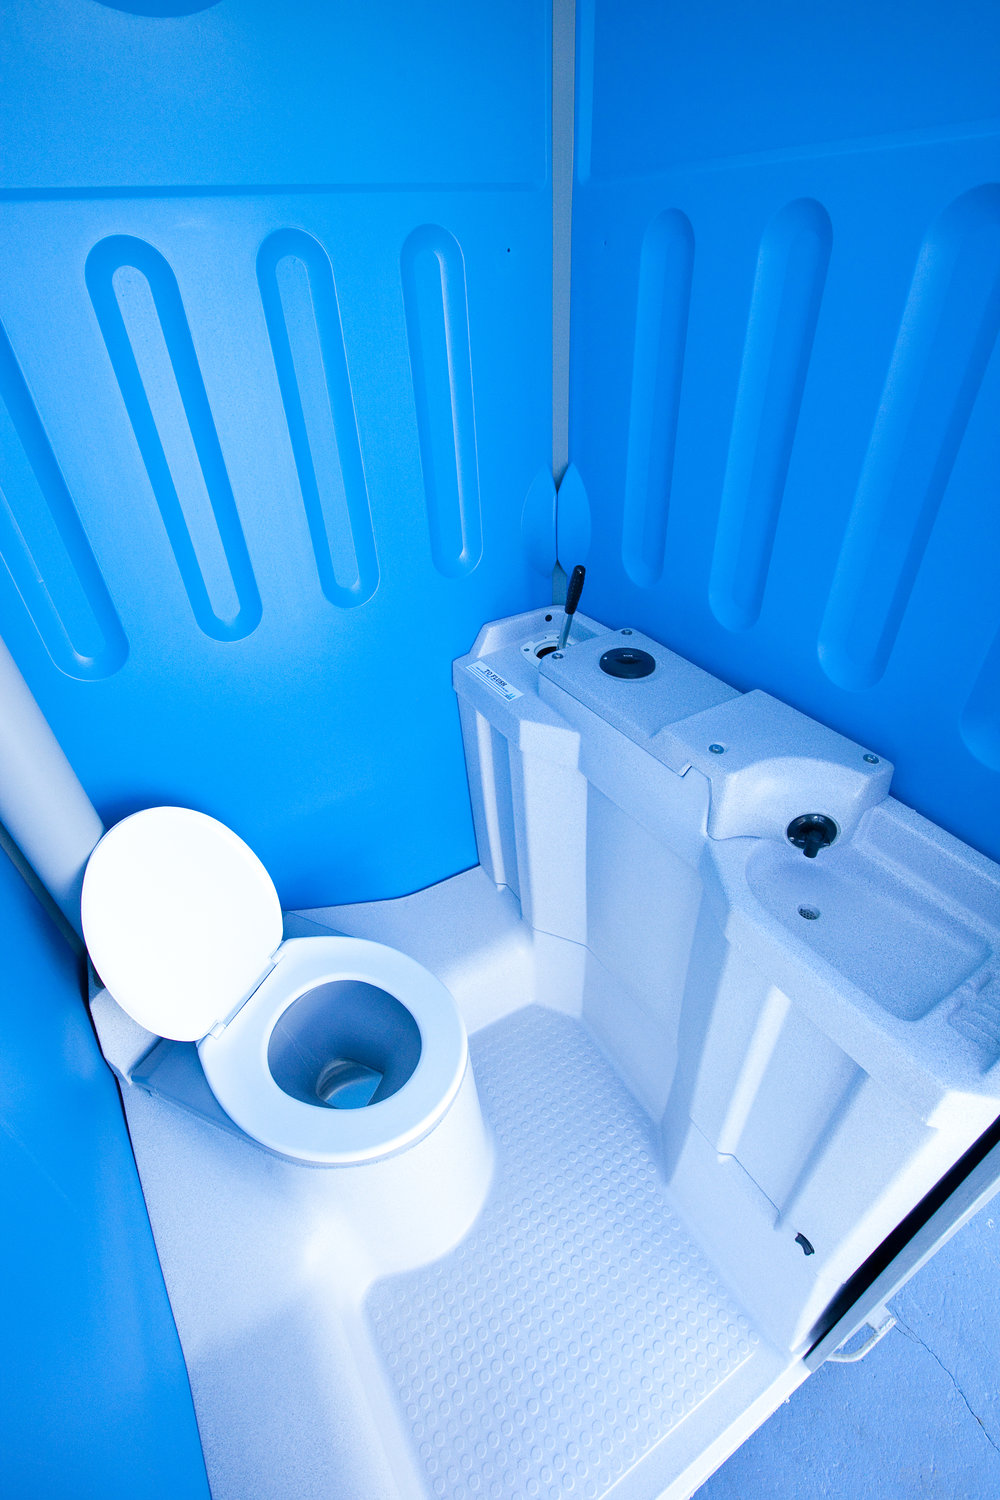 Standard Portable Toilet inside .jpg